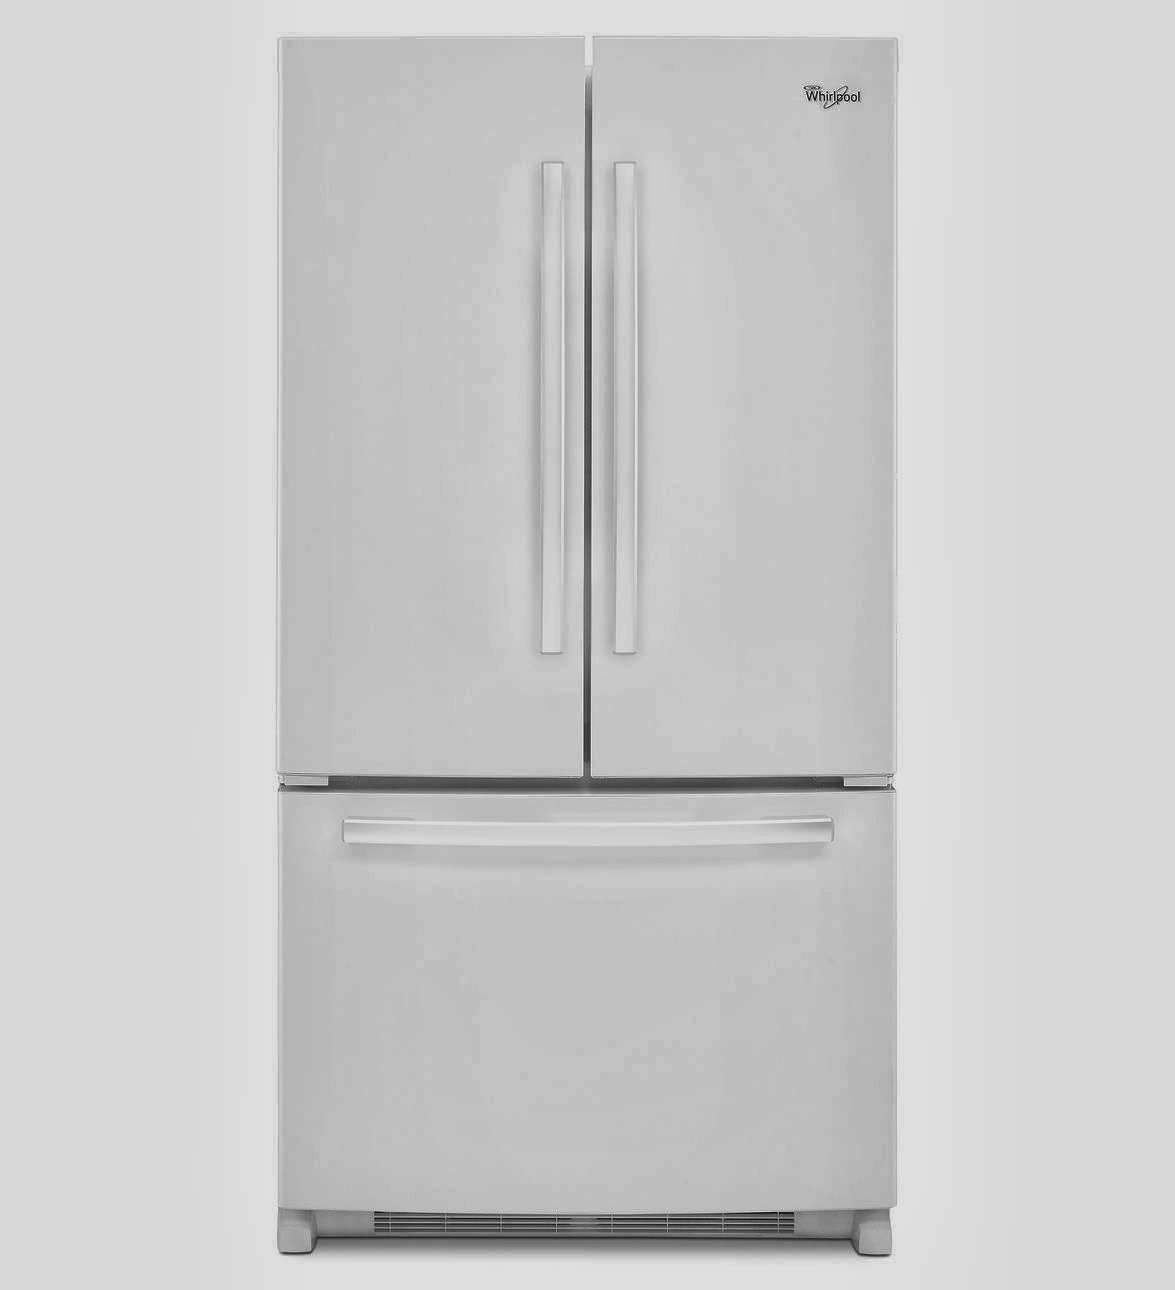 Le Meilleur You Should Probably Read This Refrigerator With Bottom Ce Mois Ci